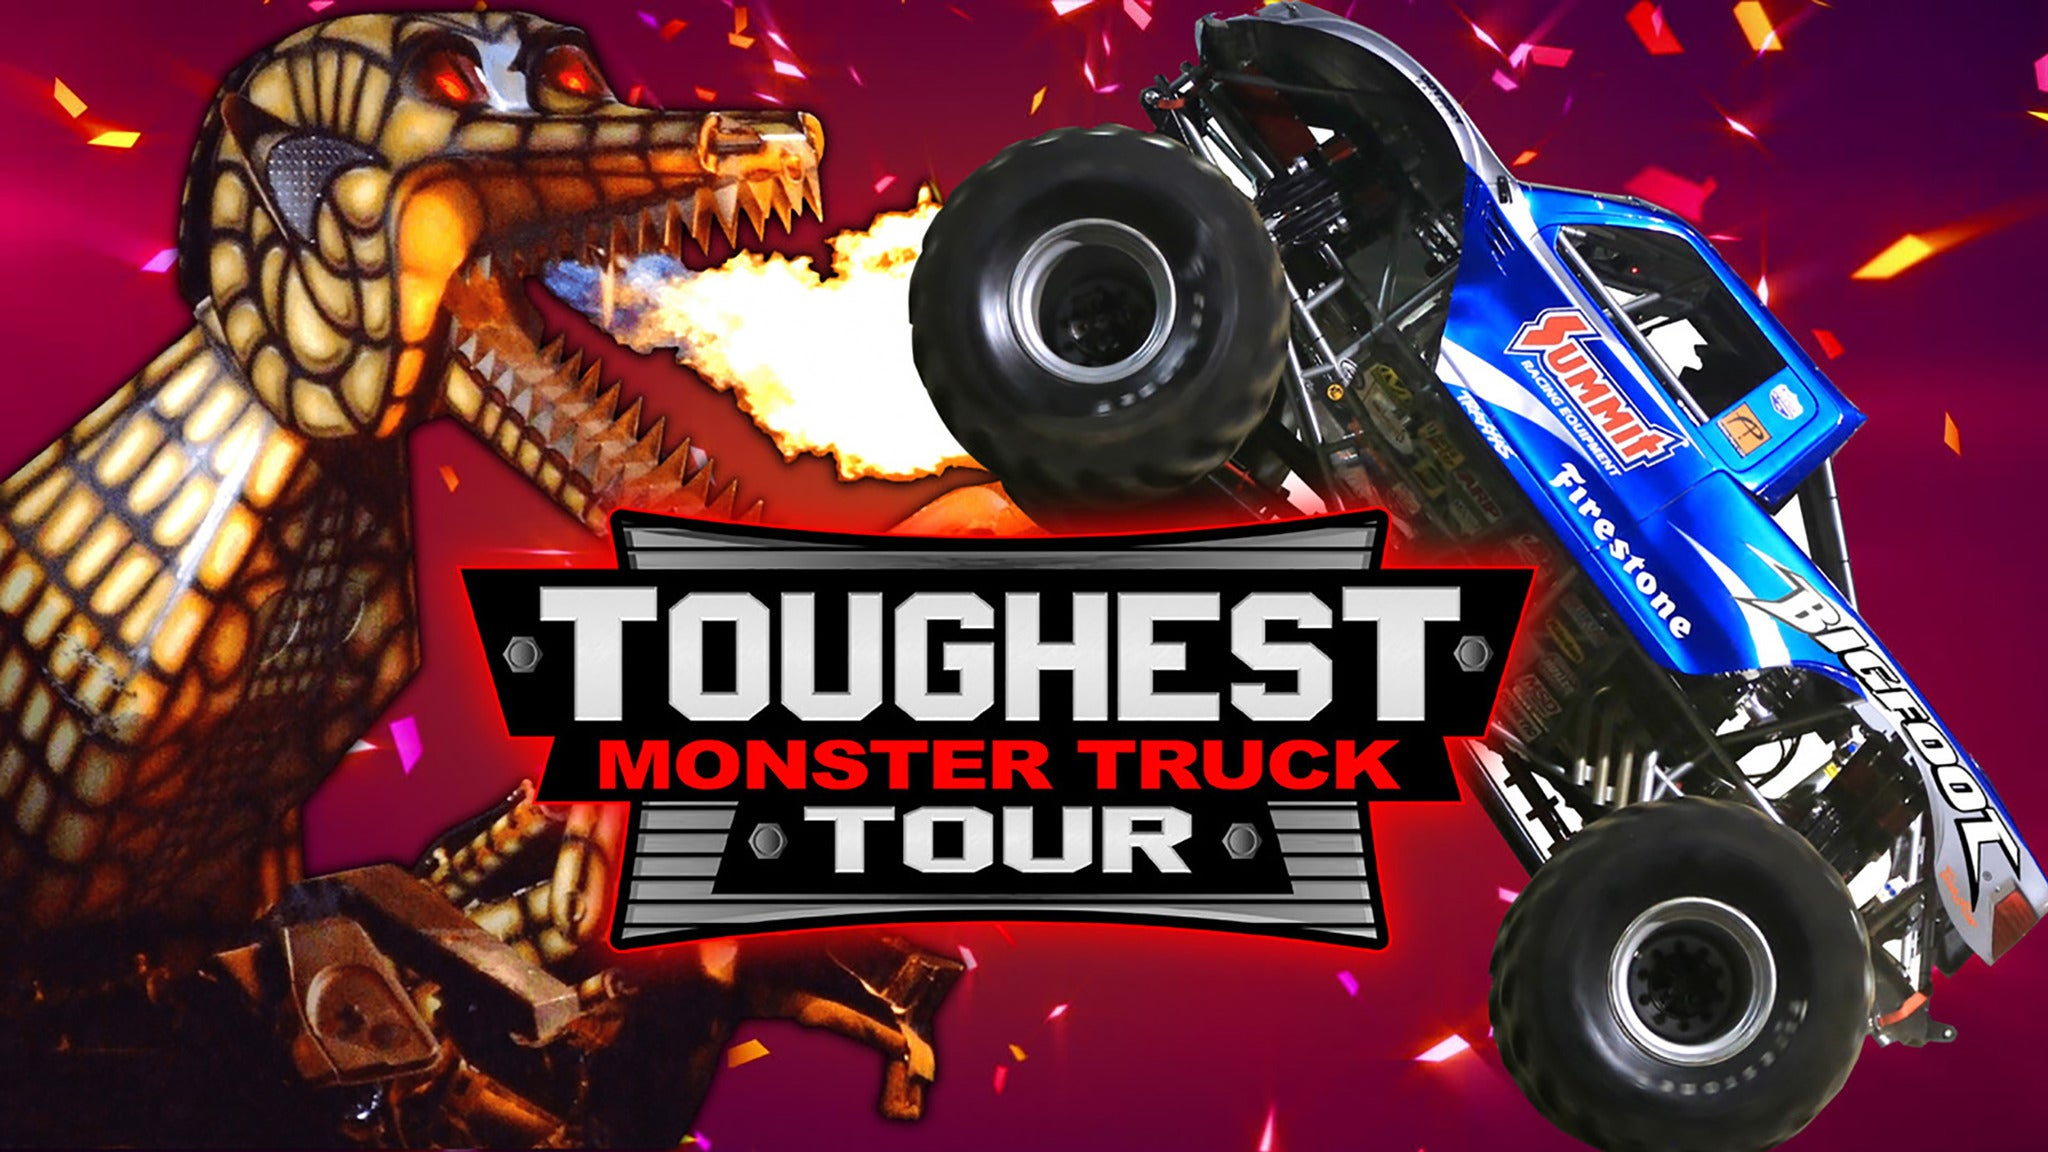 Toughest Monster Truck Tour - Championship Weekend